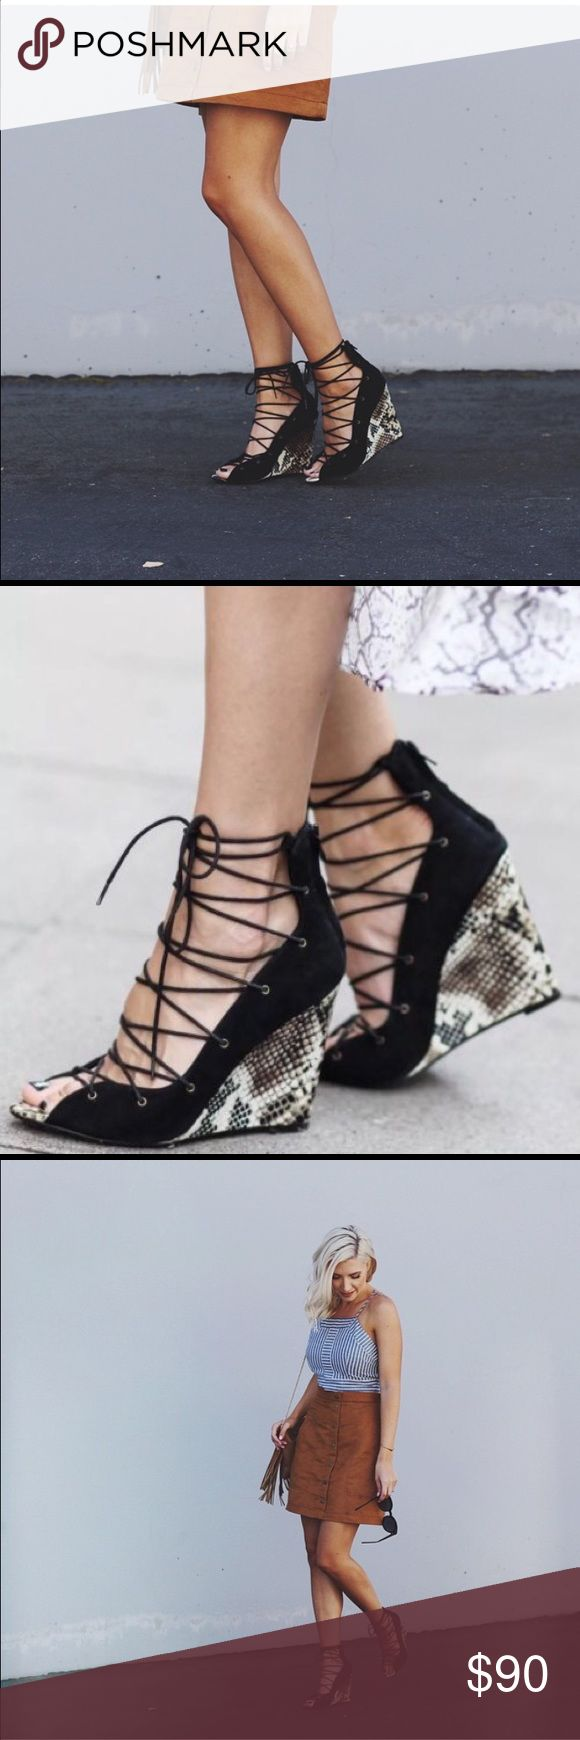 Zara Wedge •Zara lace up wedges •Black Lace up paired with snake print wedge •Sold out, no longer available •Images from Google. Last picture are of actual pair for sale.     🚫No trades  📦All orders shipped within 24hrs (business day) Zara Shoes Wedges